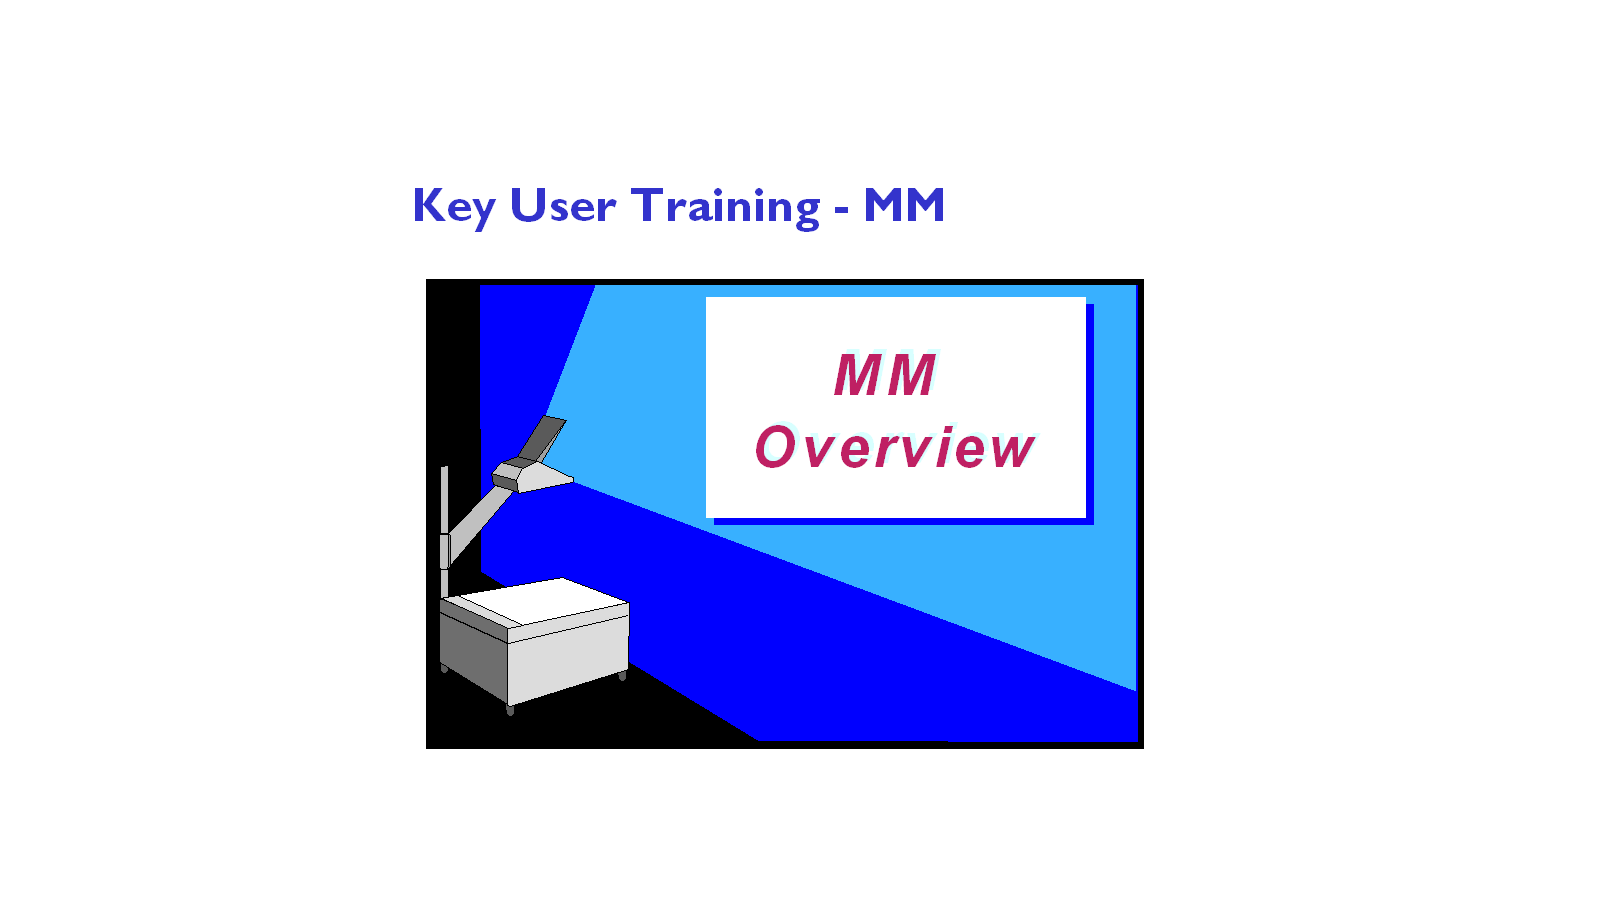 Sap mm end to end concepts sap material management sap mm end to end concepts malvernweather Choice Image